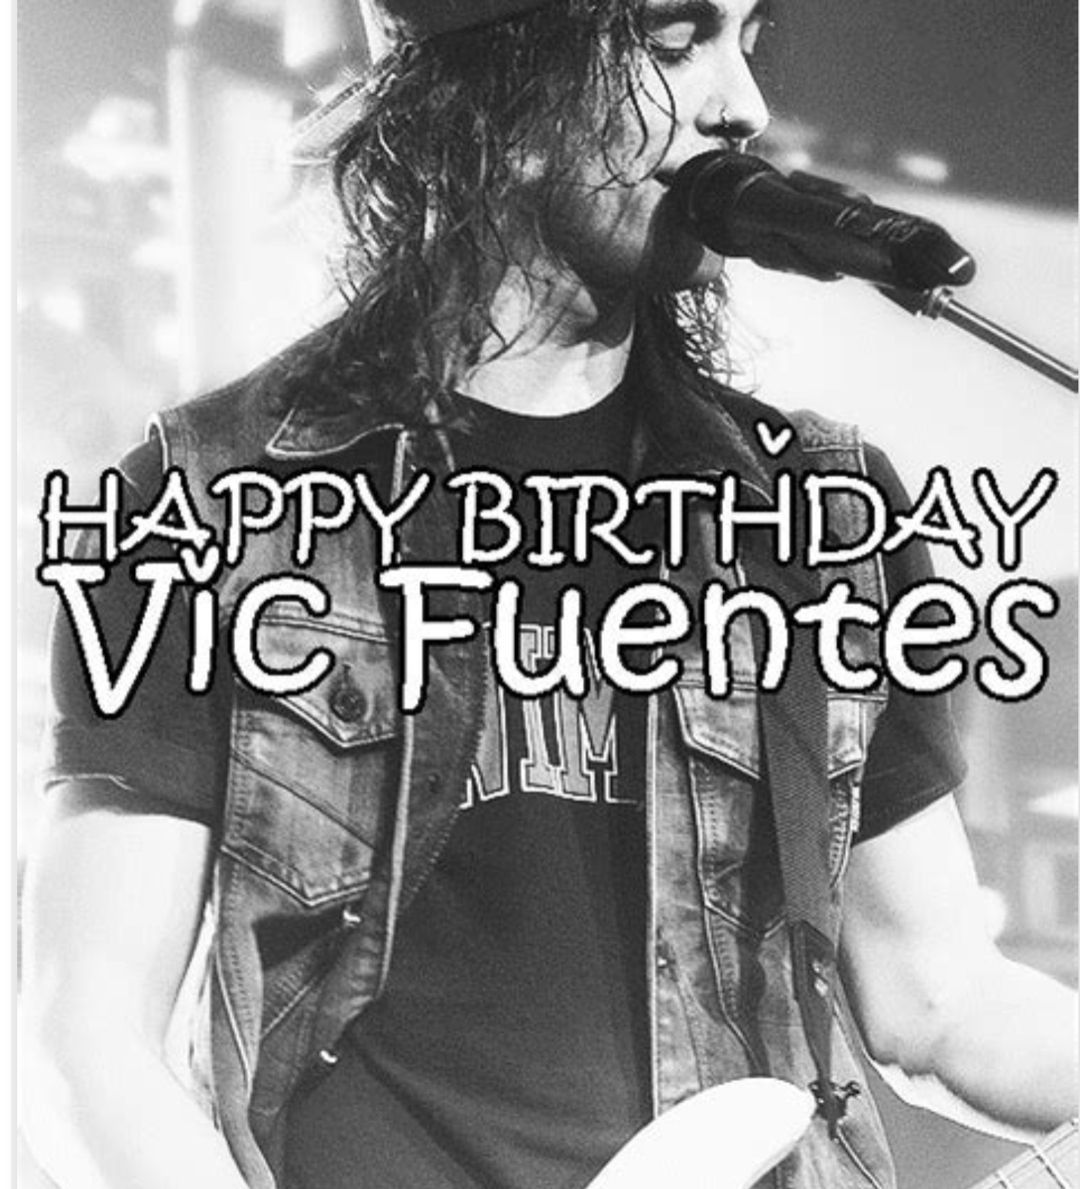 I wanted to say a special Happy Birthday to @piercethevic I got to see Vic in concert last year and it meant so much to me. At the point of the concert I was in a really really dark place and I sort of fell into Pierce The Veil's music. I'm so happy that I got into their music, so many times listening to Vic's voice and lyrics have saved my life and helped me through so much. Sadly none of my pictures from that concert turned out and I didn't get to meet them. I hope one day I'll be able to meet #pictureplacemeant